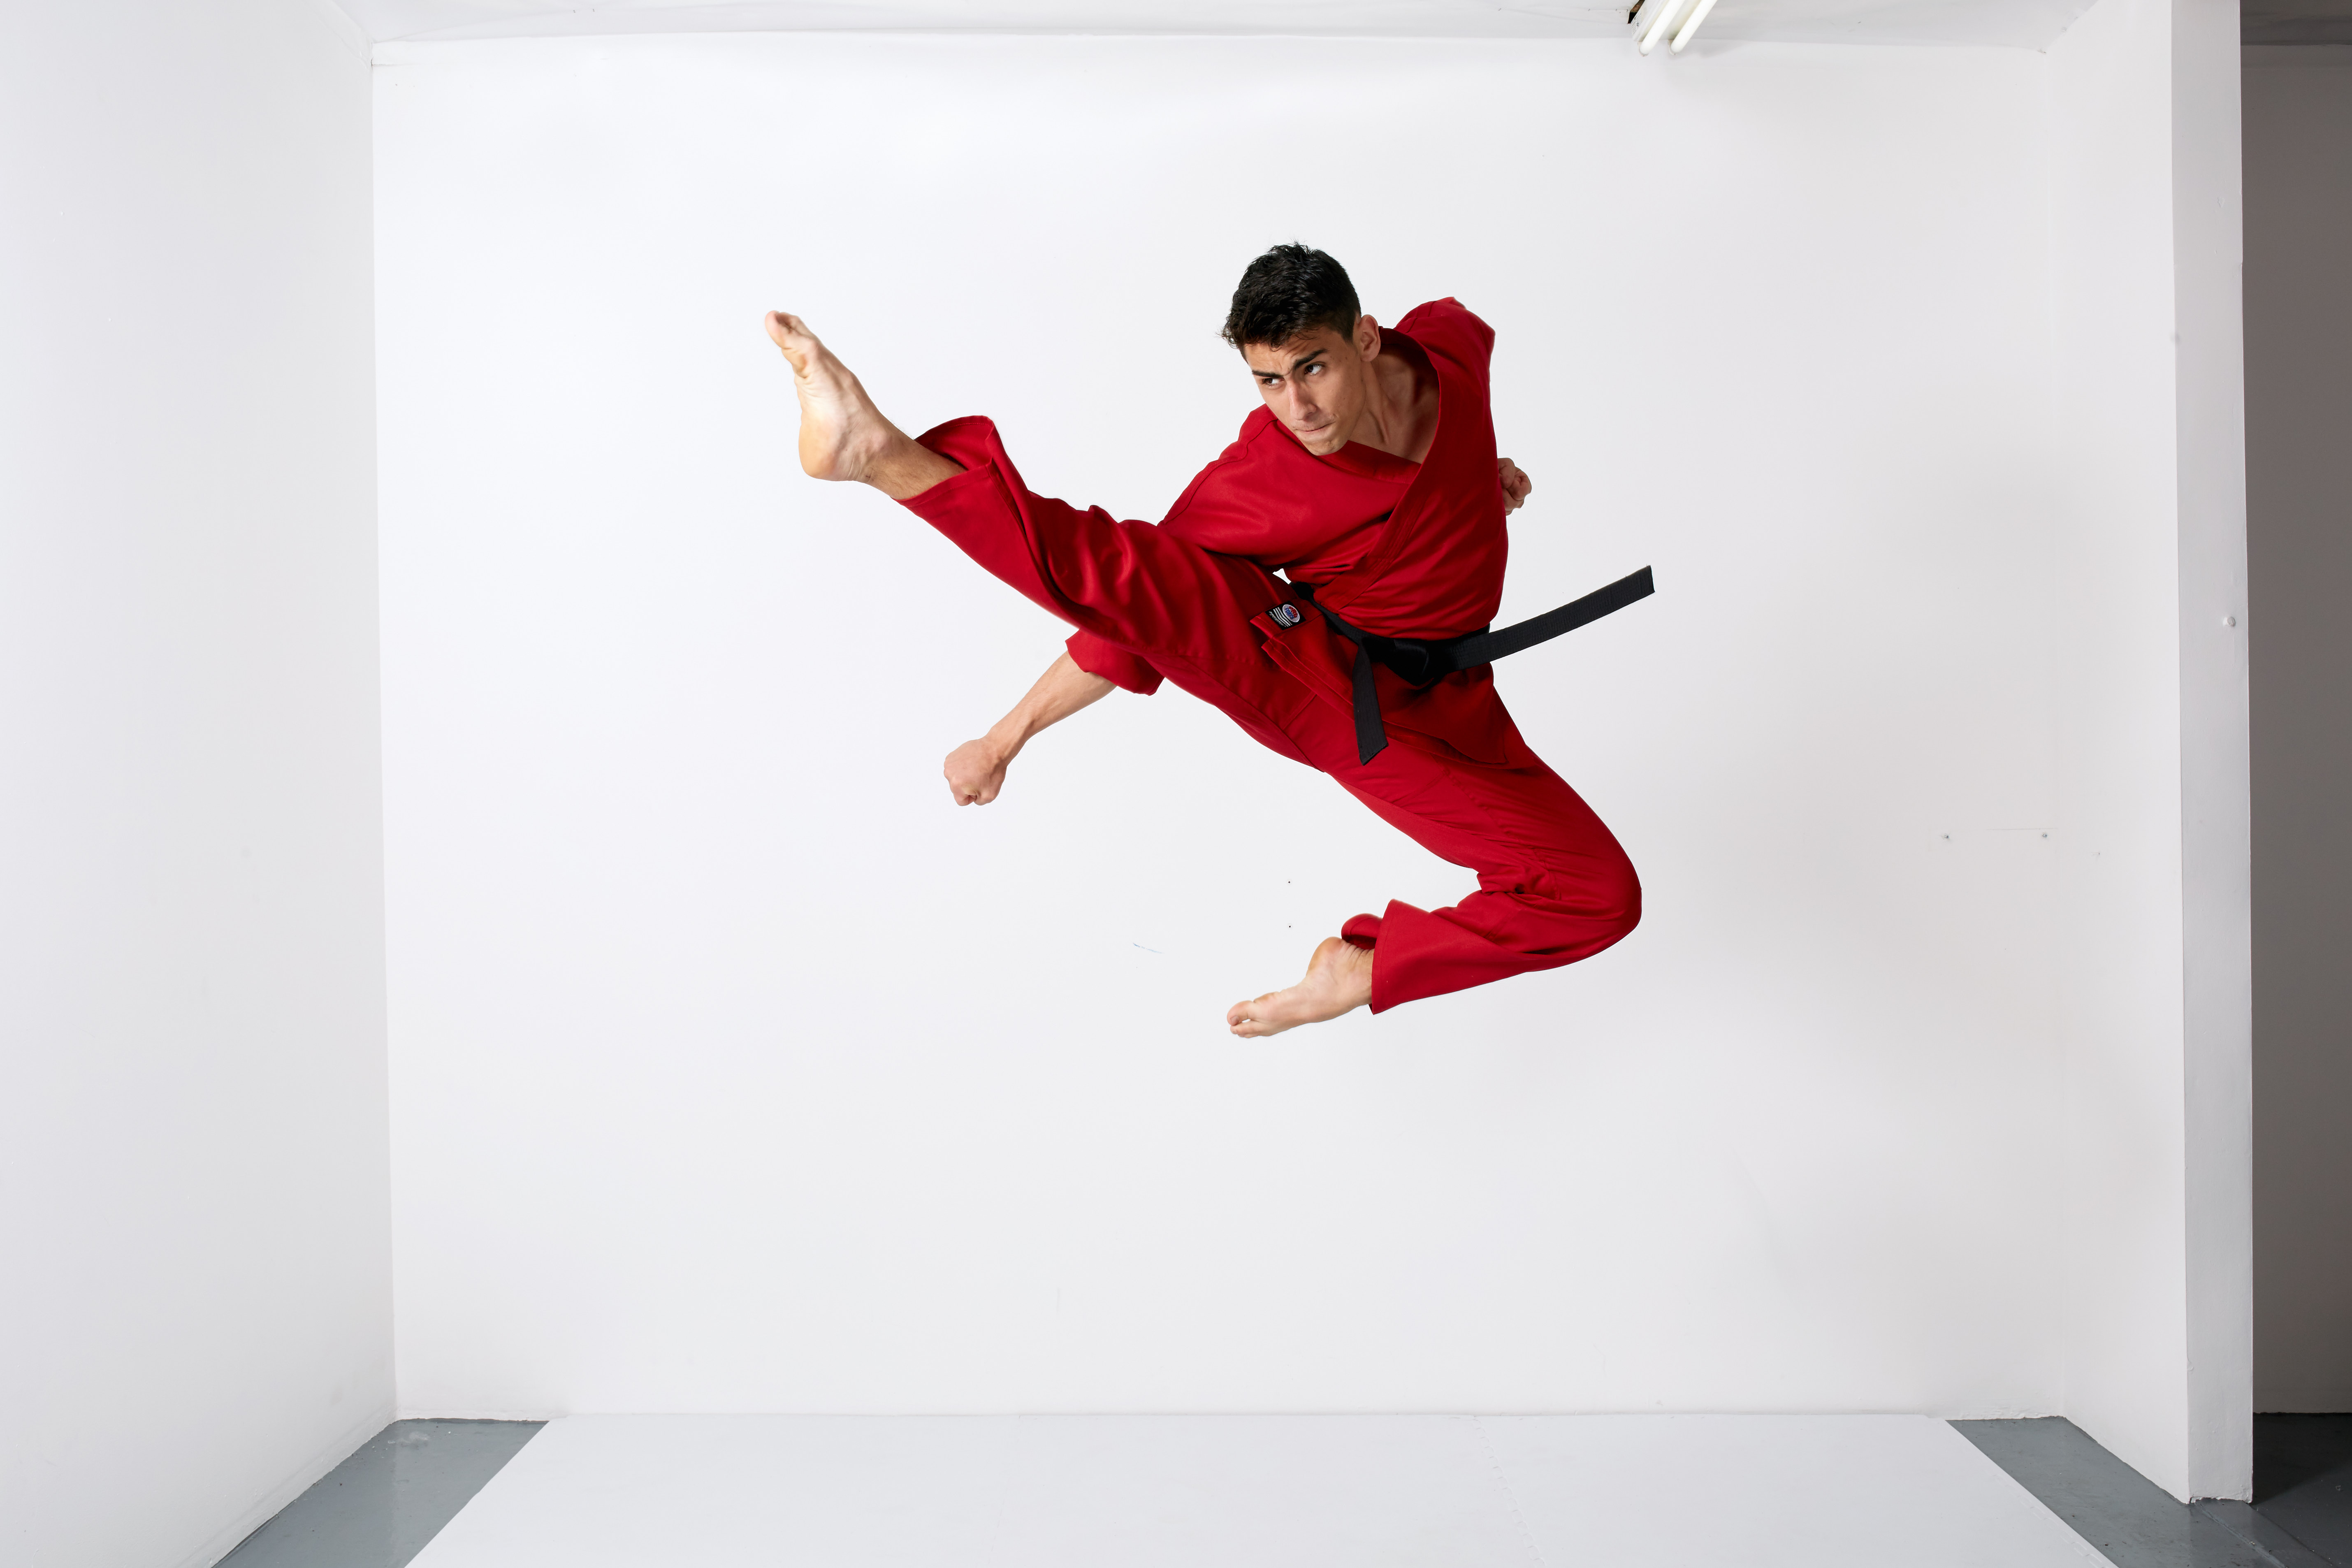 rewards in martial arts Welcome to christ centered martial arts we are pleased you have chosen to view our website at ccma, we are a family and hope your study of the martial arts is a rewarding and fulfilling experience that will make a lasting impression both personally and spiritually.